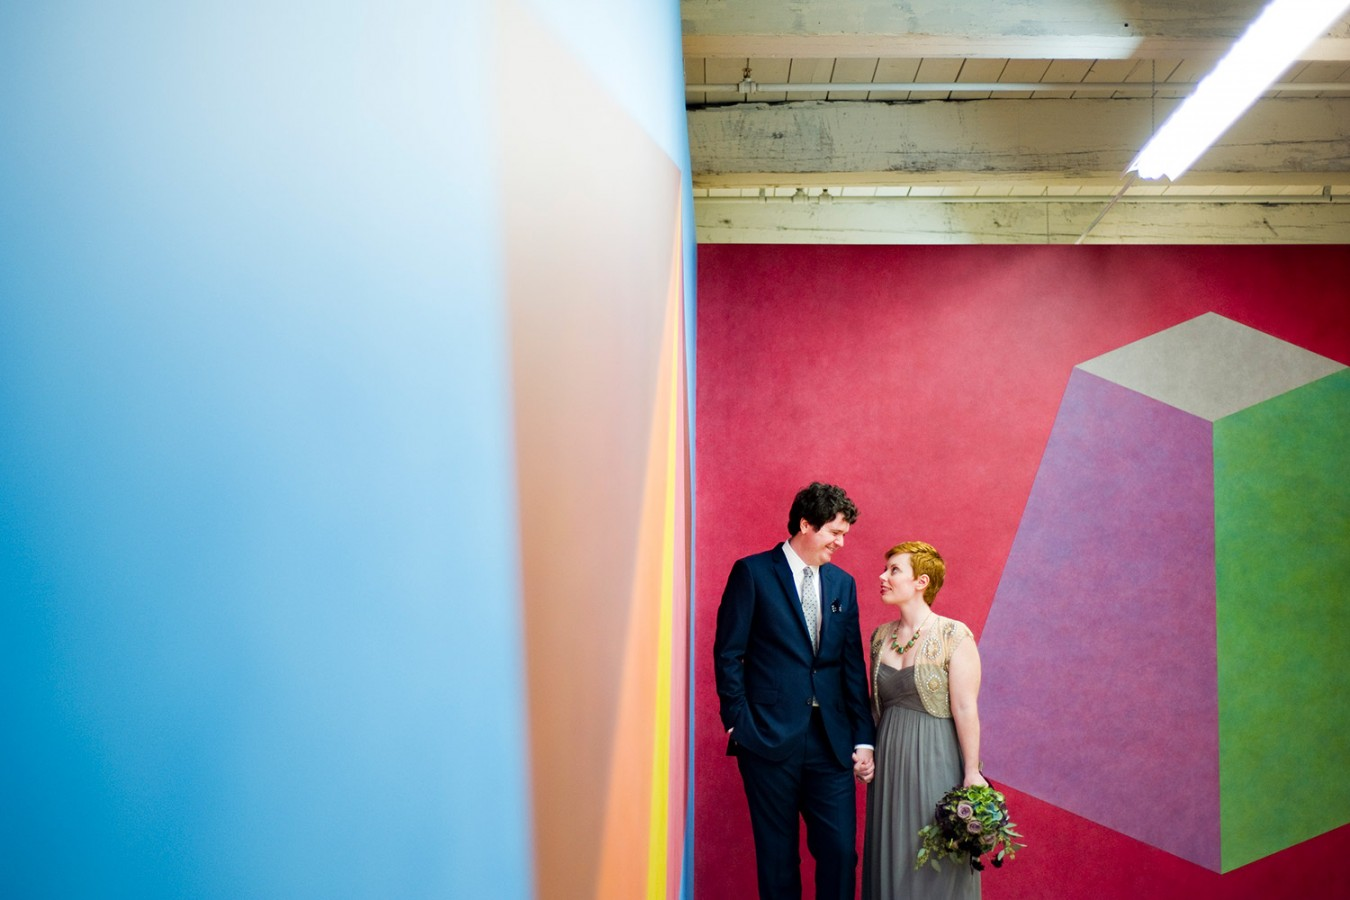 mass-moca-weddings-005